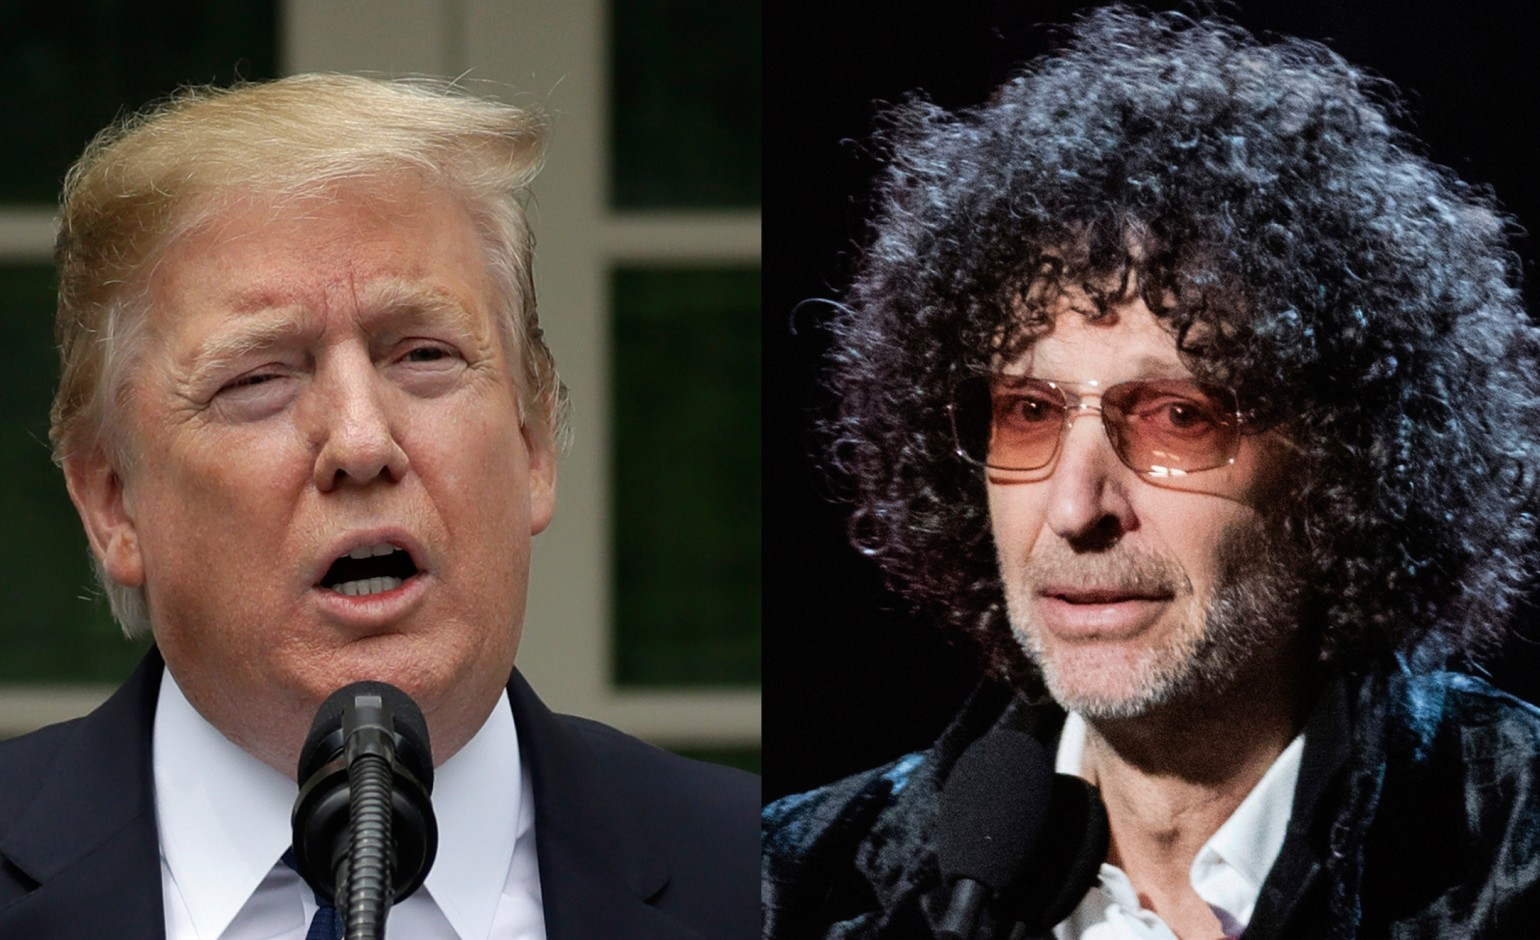 Howard Stern said this to Trump supporters